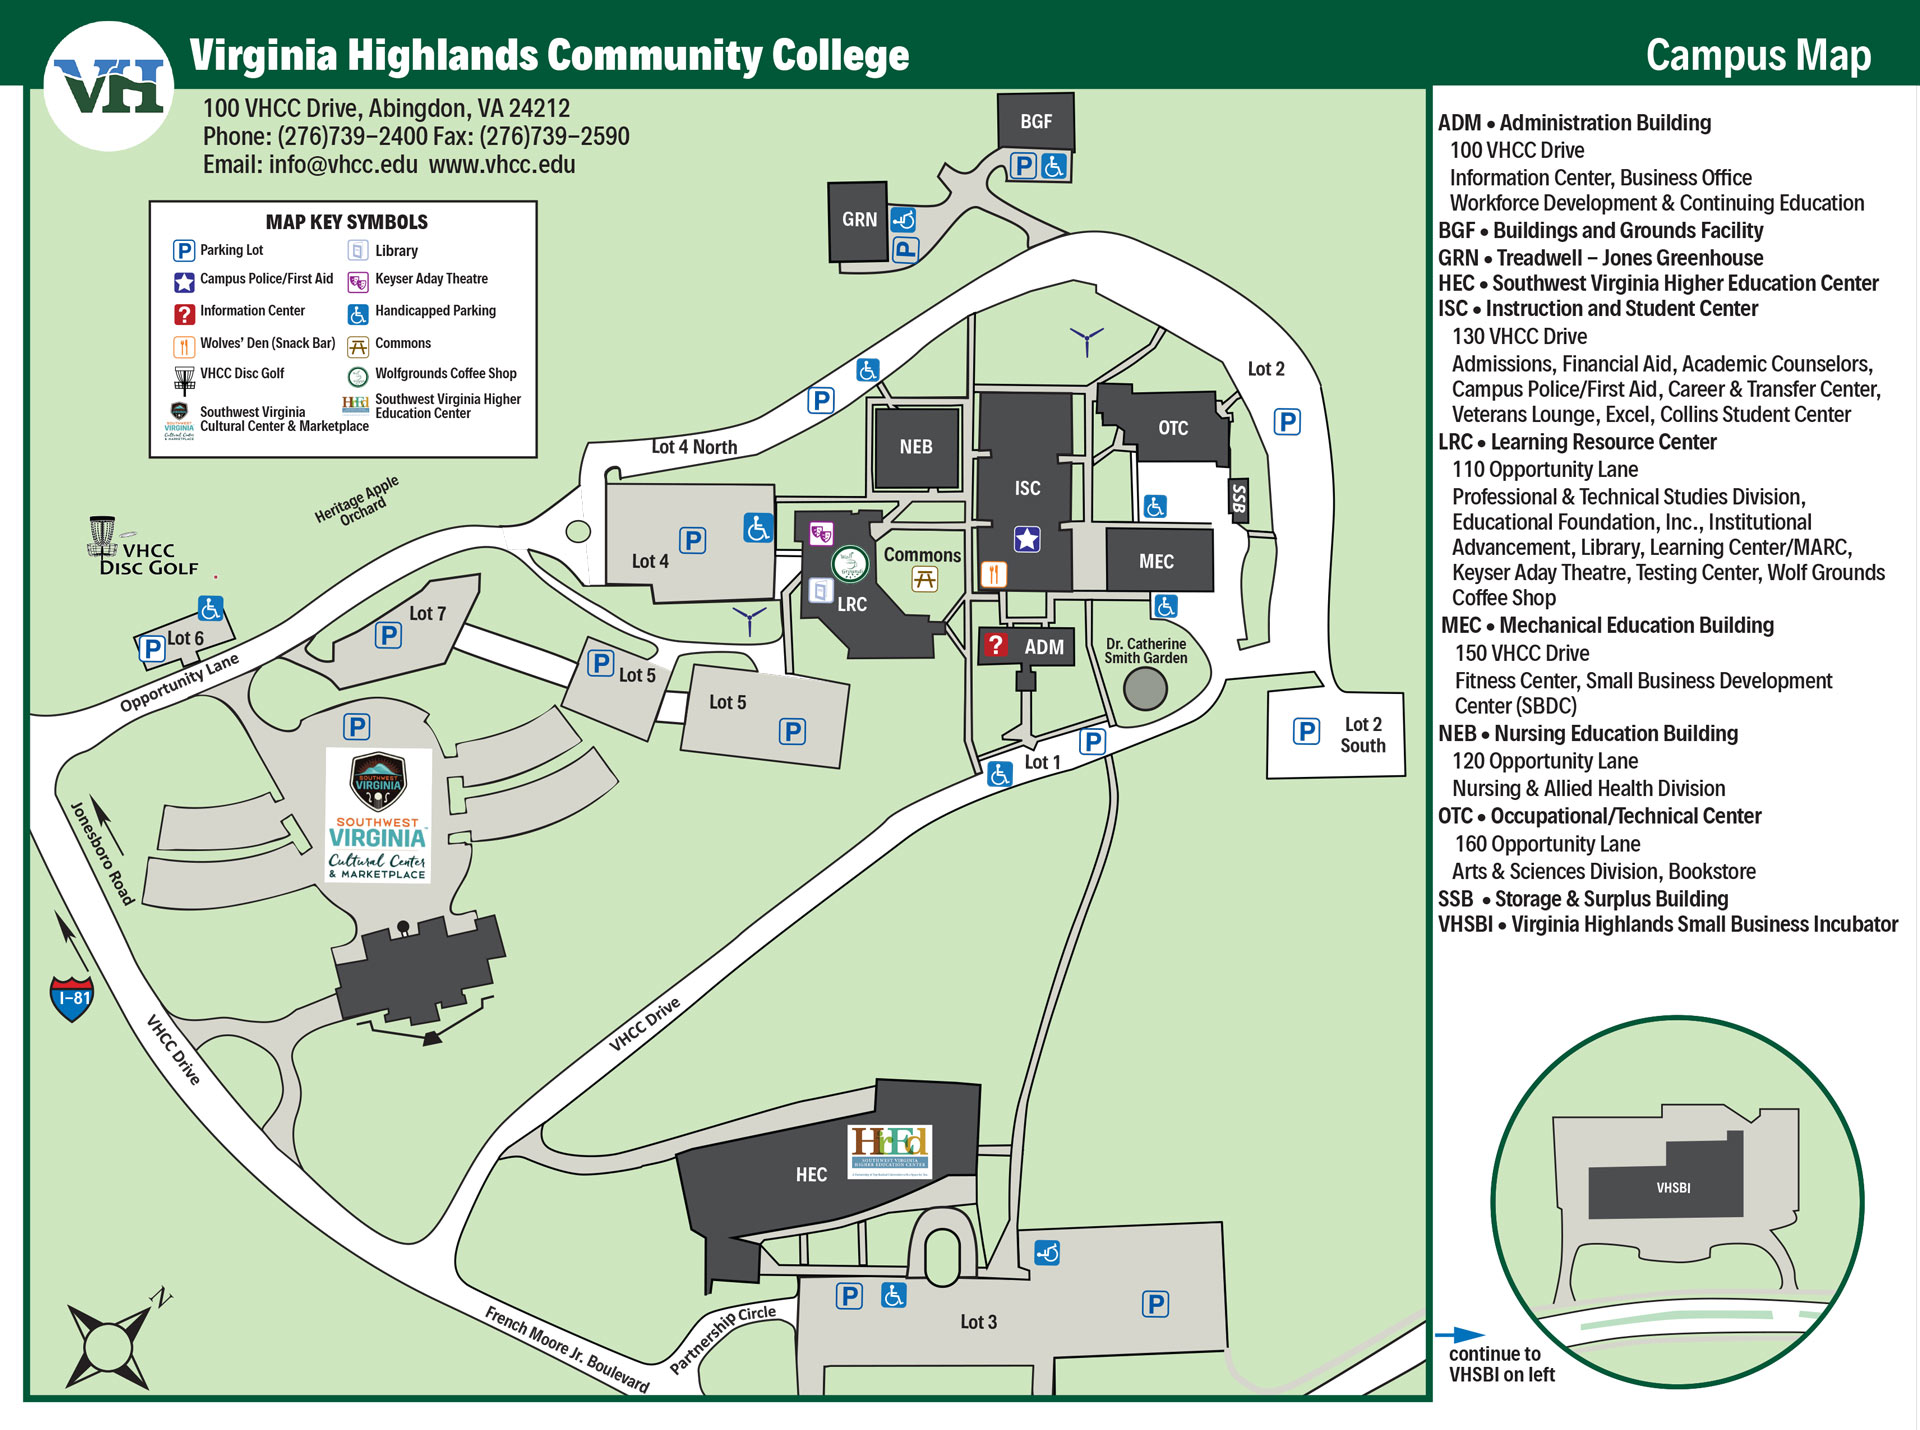 Campus Map & Directions | Virginia Highlands Community College on new orleans university campus map, morehouse school of medicine campus map, prairie view a&m university campus map, private school campus map, johnson c smith campus map, palm beach atlantic university campus map, st. cloud state university campus map, xavier university of louisiana campus map, franklin campus map, lane college campus life, harris-stowe state university campus map, california university of pennsylvania campus map, trevecca university campus map, winston salem state university campus map, charlotte campus map, north carolina central university campus map, lake superior state university campus map, eastern connecticut state university campus map, university of maryland eastern shore campus map,